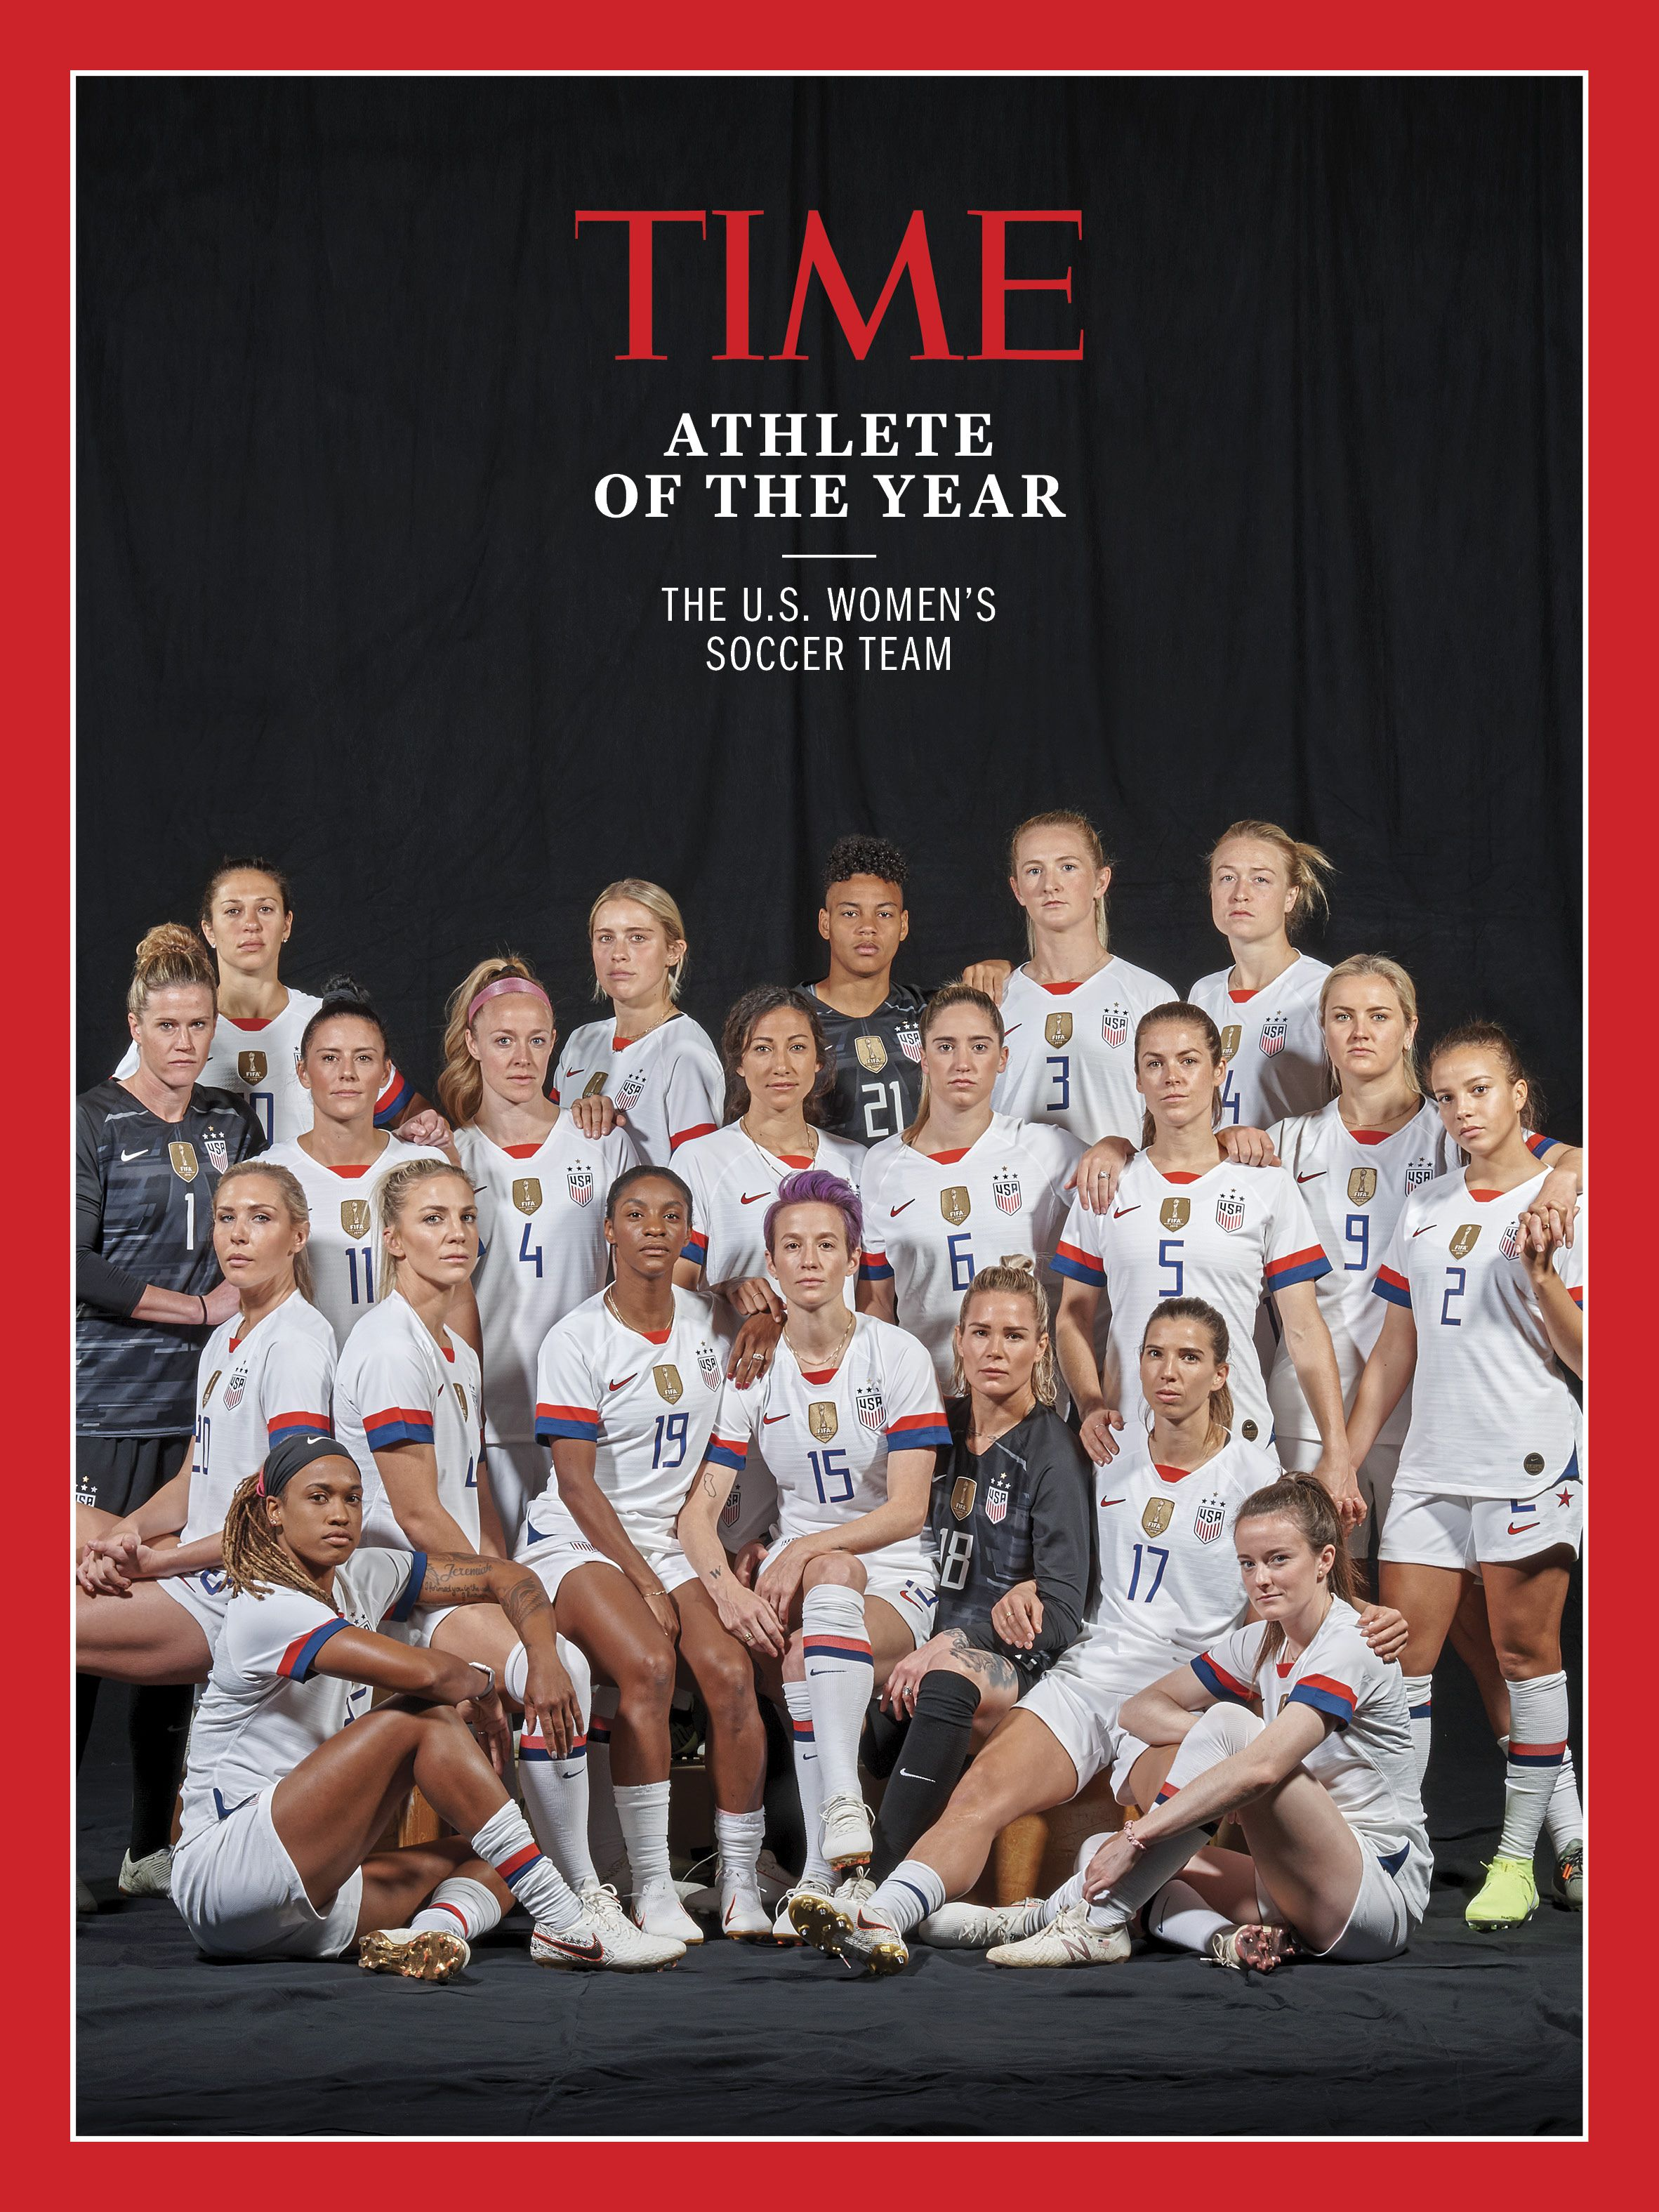 U S Women S Soccer Team Time S Athlete Of The Year 2019 Time In 2020 Us Women S National Soccer Team Usa Soccer Women Women S Soccer Team